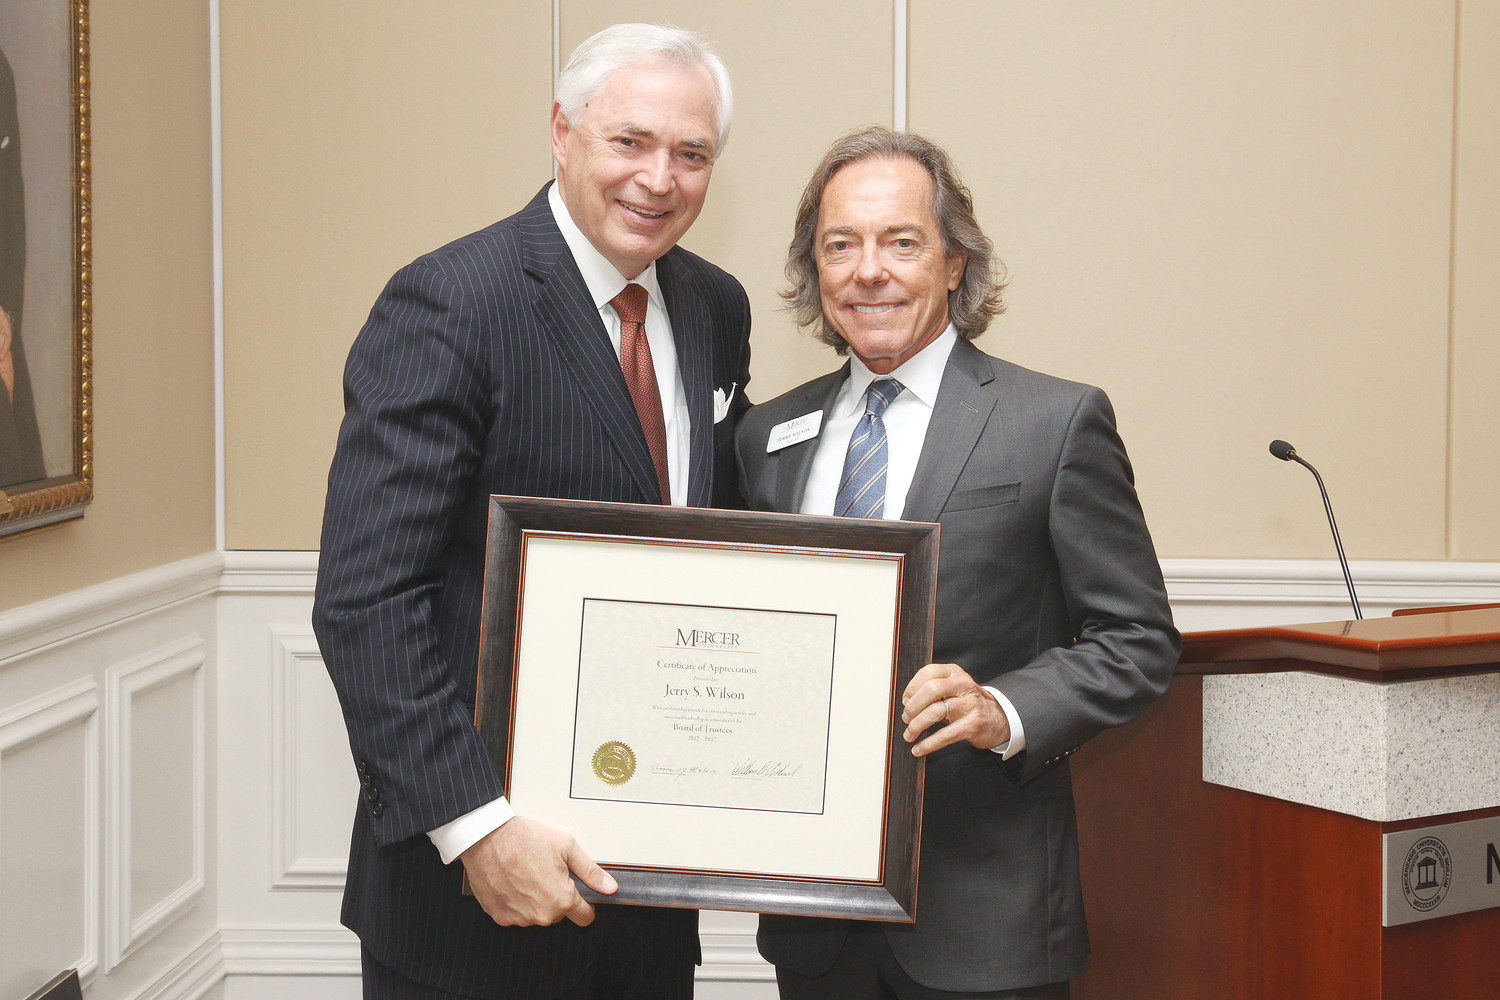 Ponte Vedras Jerry Wilson Recognized For Service As Mercer